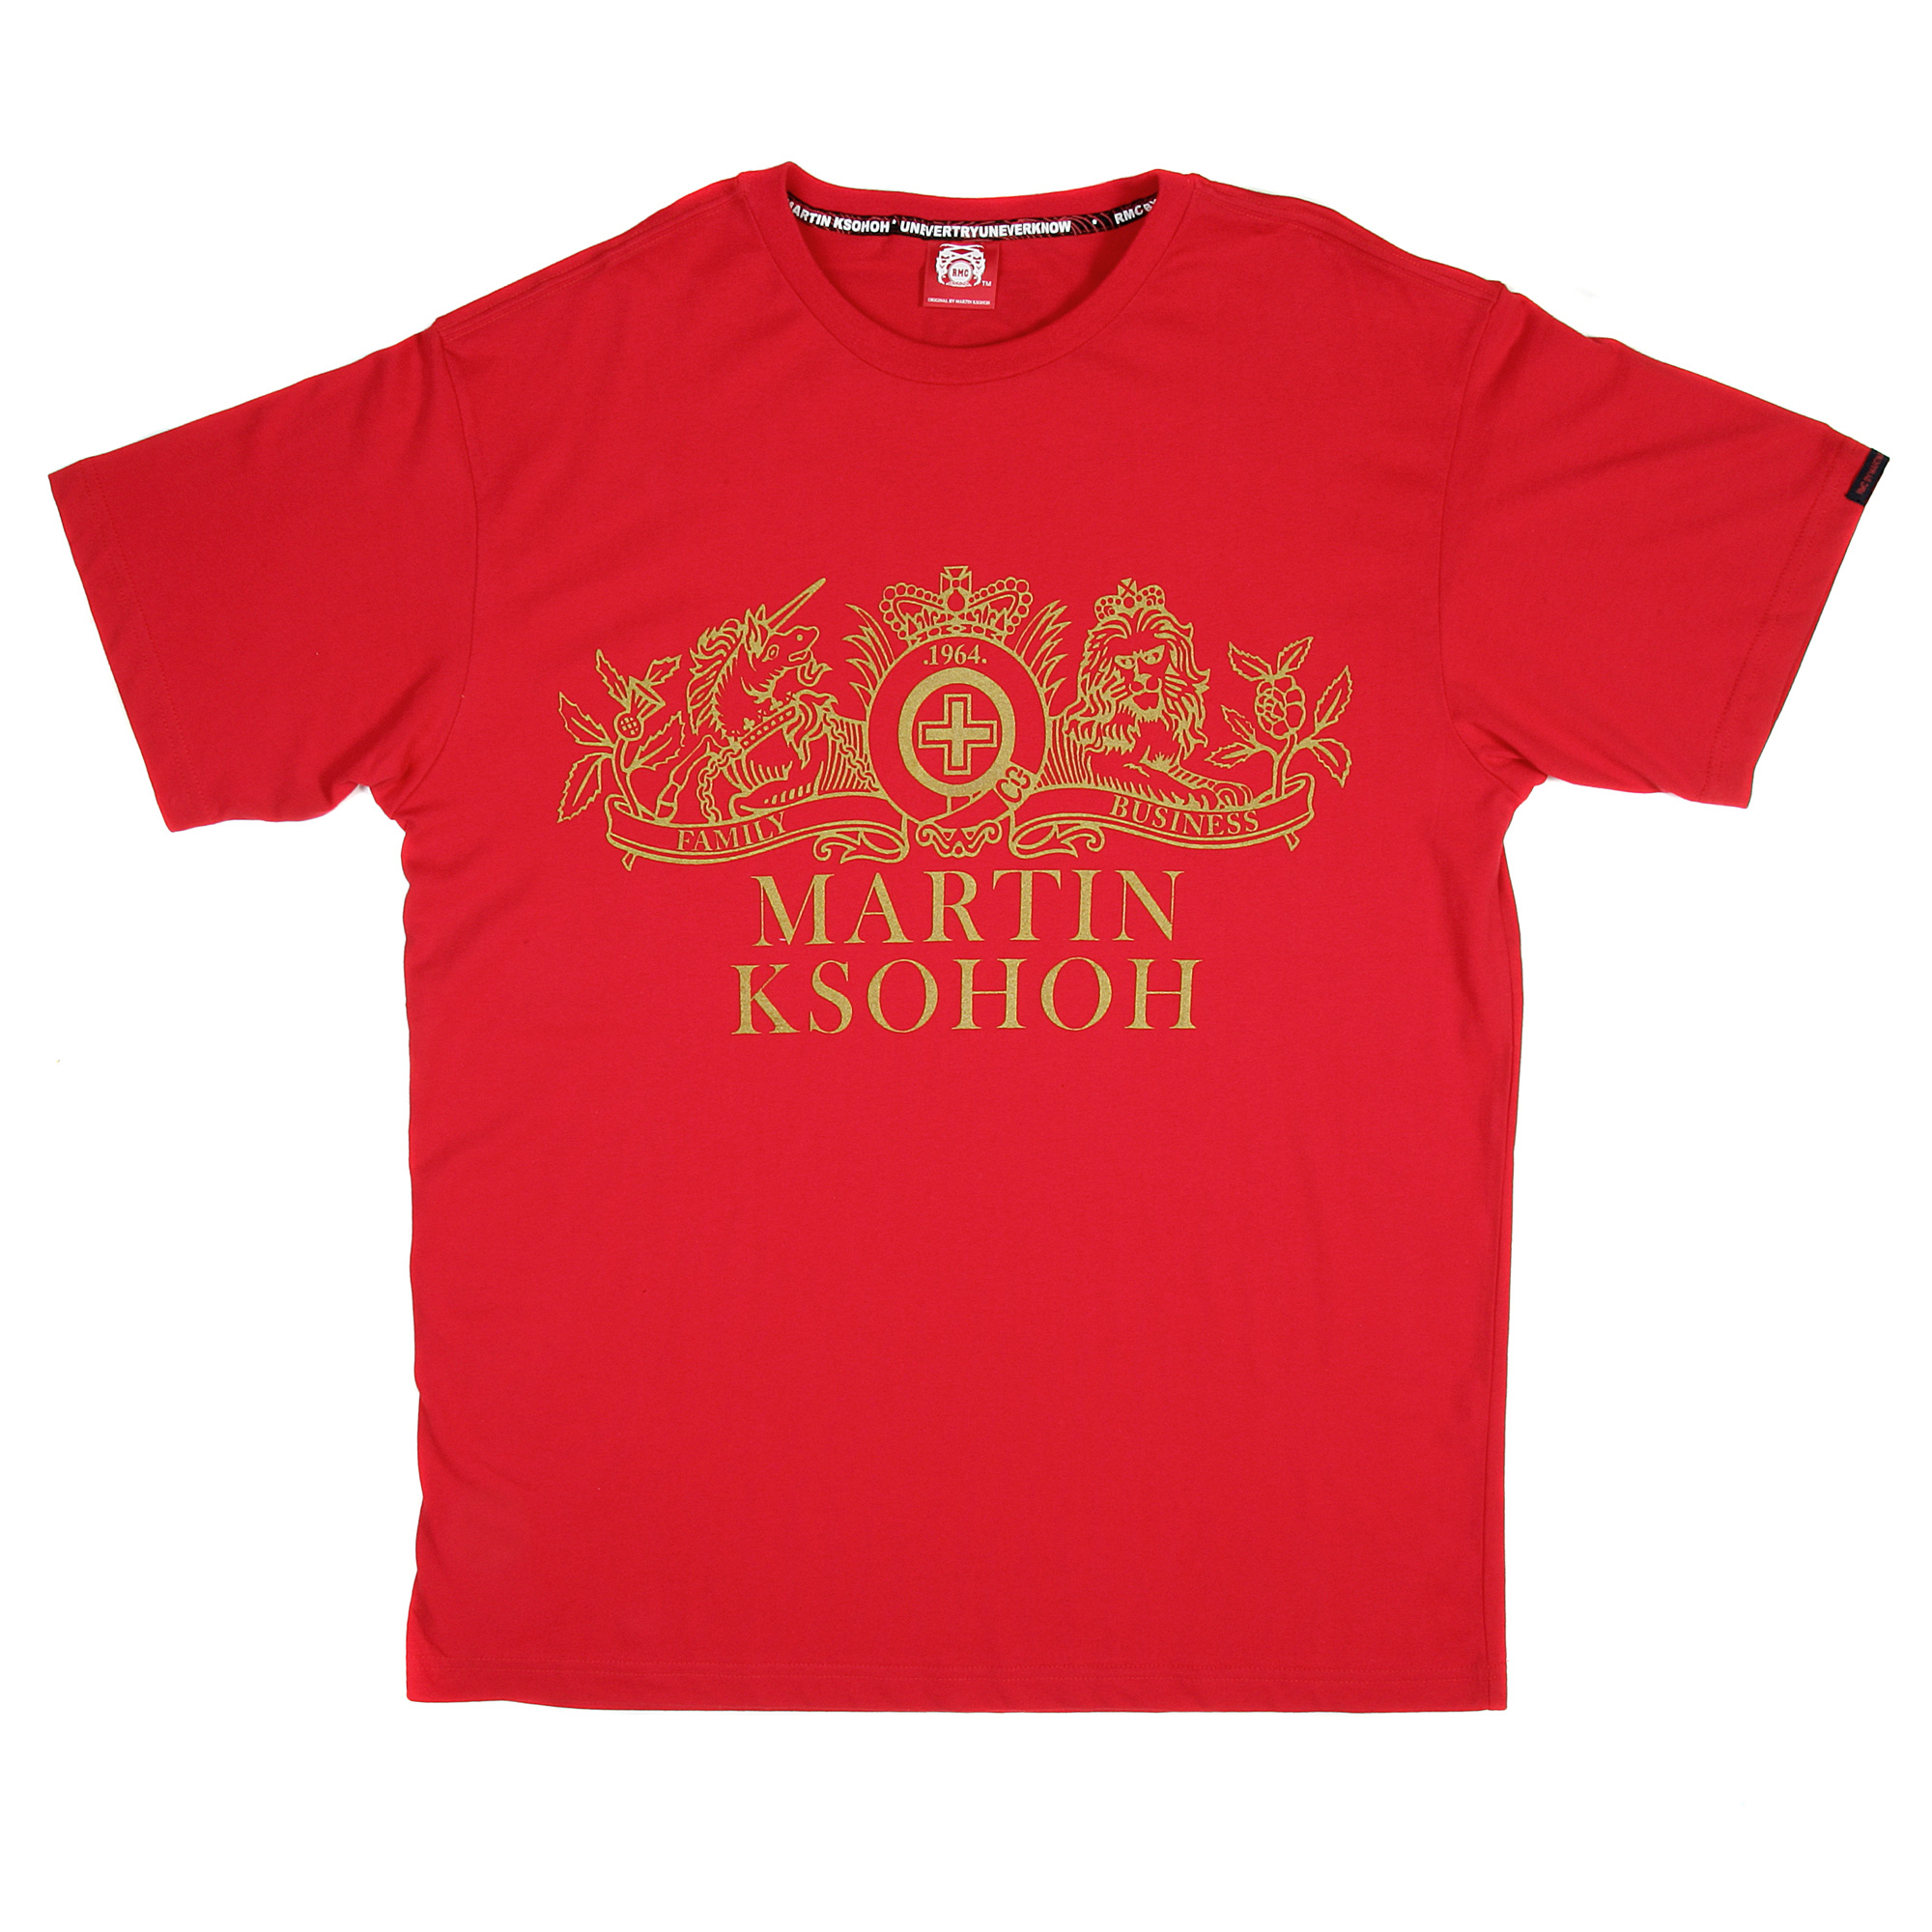 red T-shirt with golden print